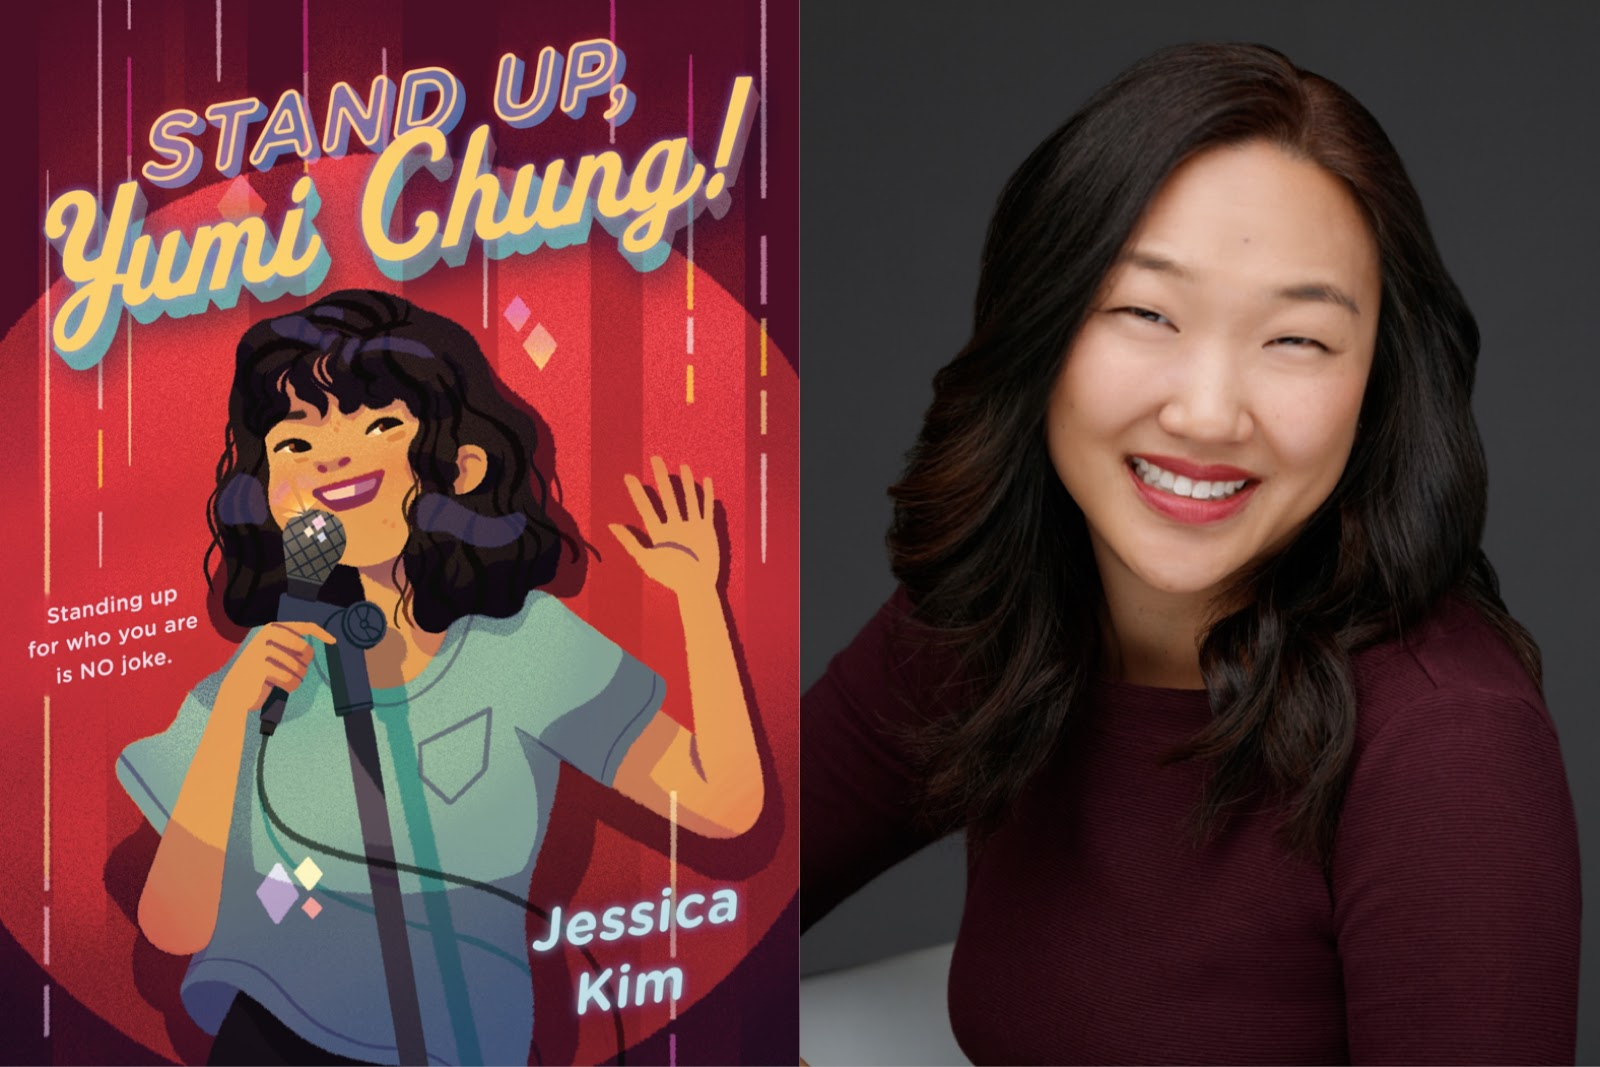 Interview: Jessica Kim, Author of 'Stand Up, Yumi Chung!', Tells Us About Her Journey As An Asian American Woman